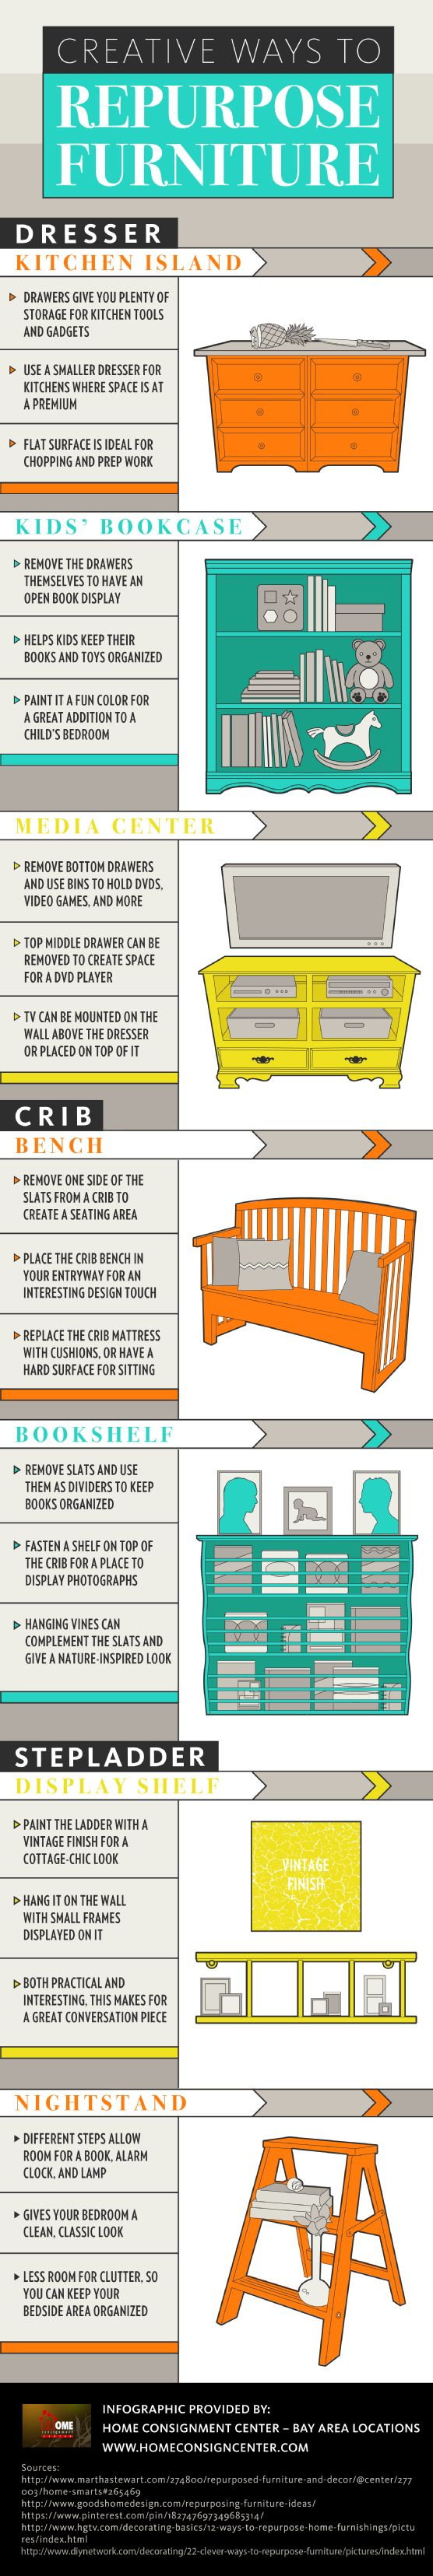 235 best diy crib repurposed images on pinterest old cribs old baby cribs and crib bench